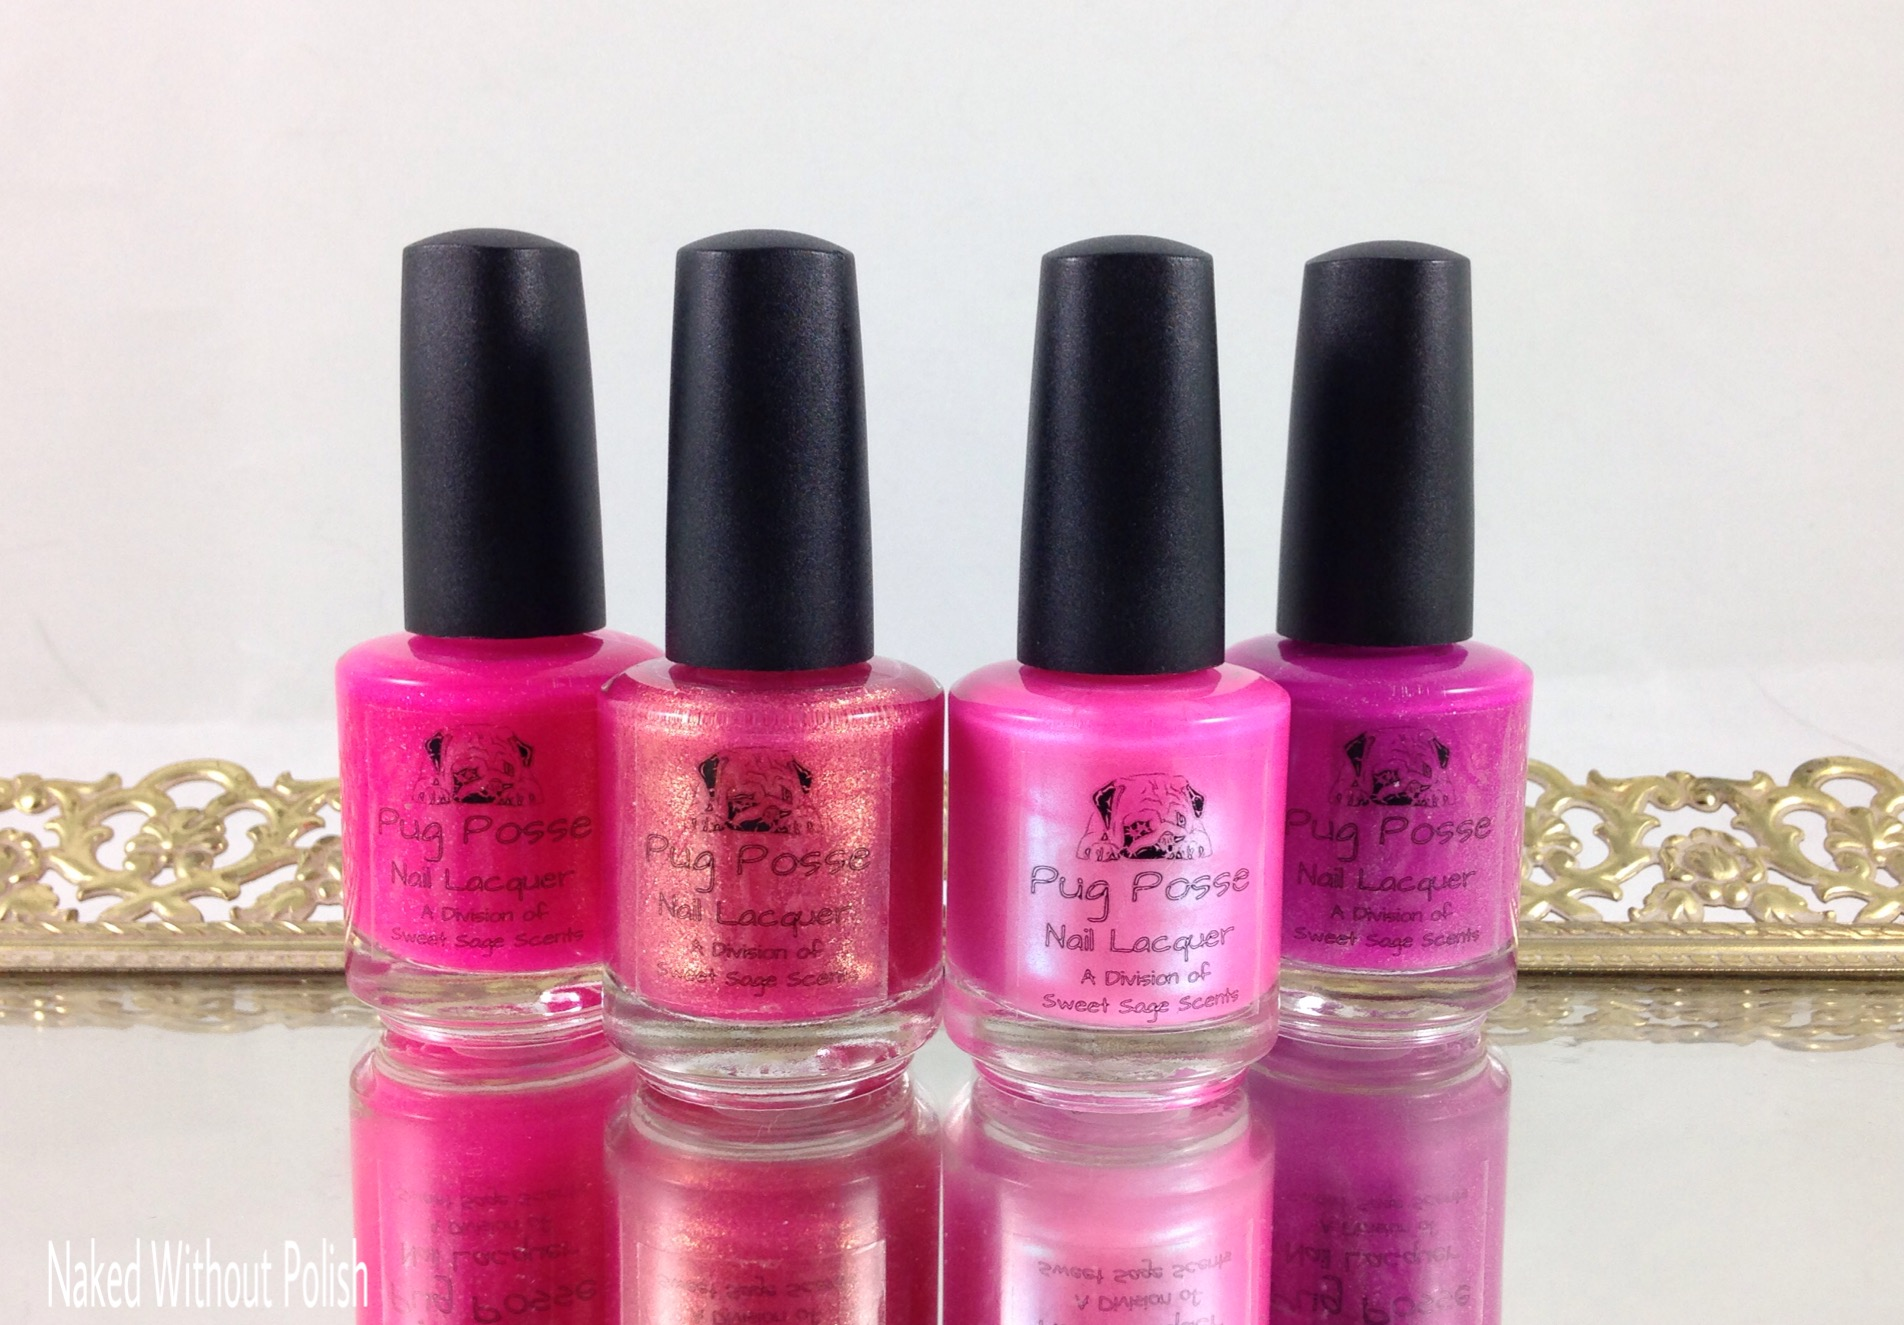 Pug-Posse-Nail-Lacquer-The-Pink-Collection-1